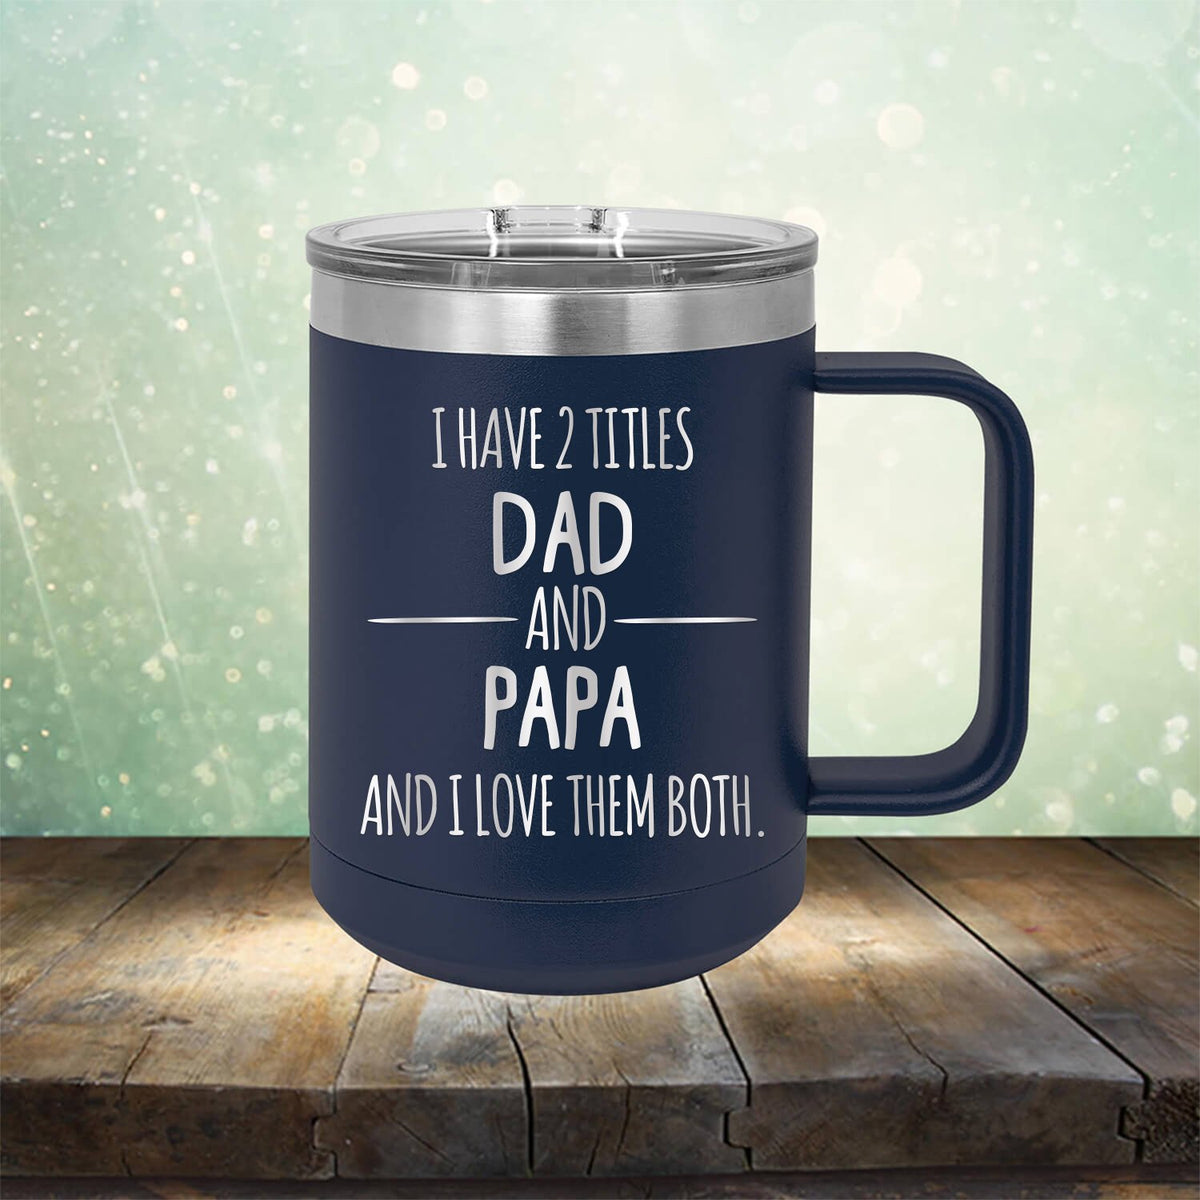 I Have 2 Titles Dad and Papa and I Love Them Both